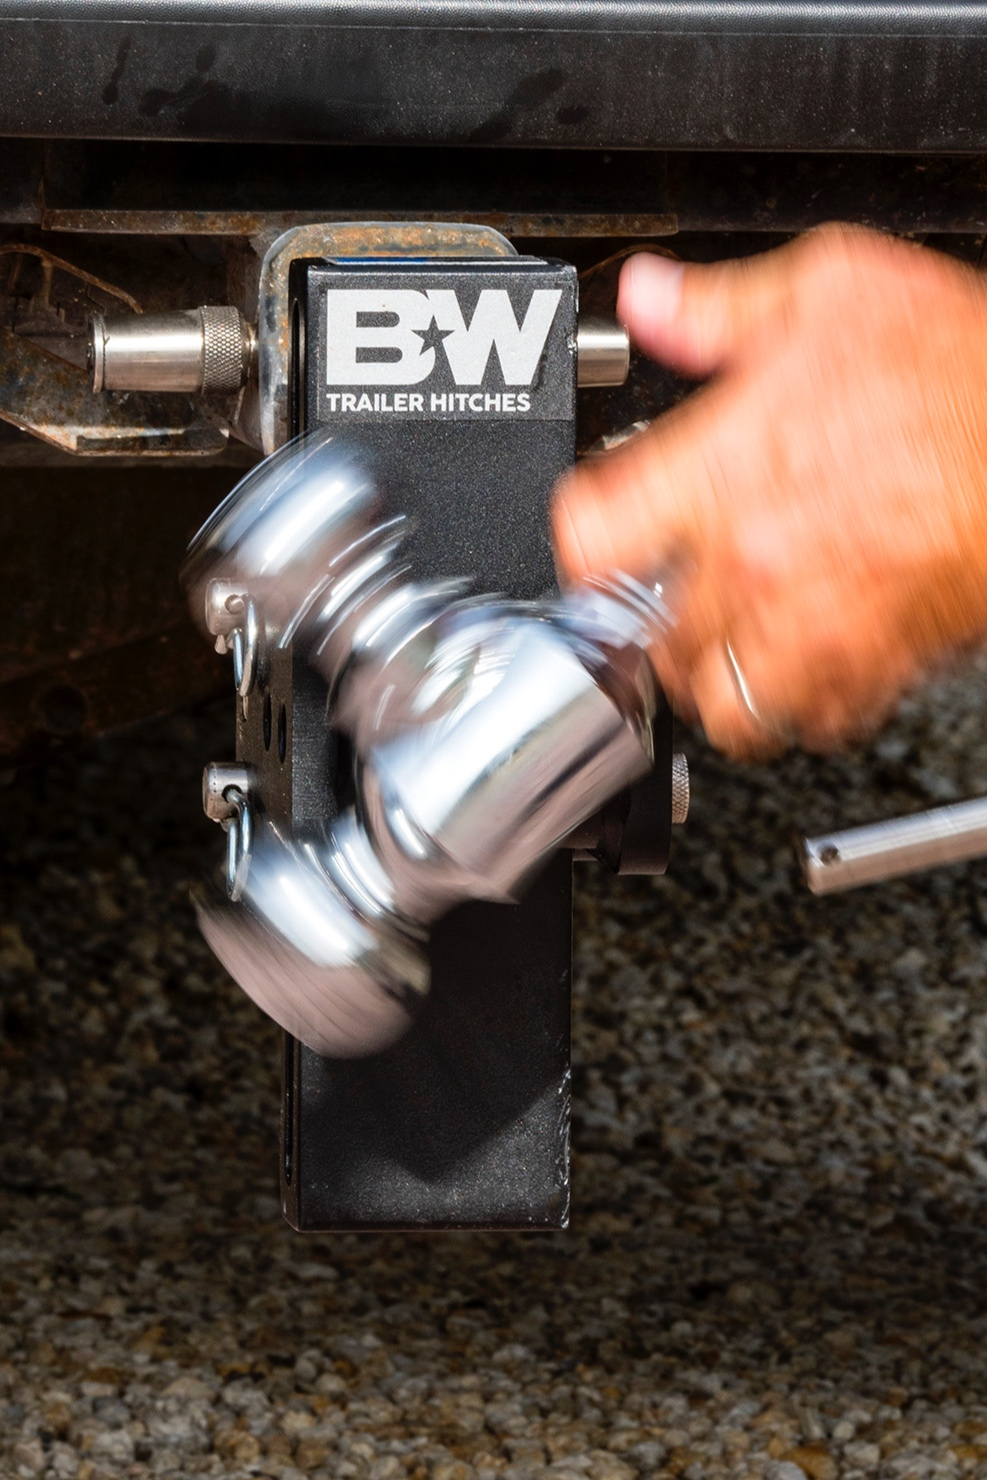 get your tow & stow now - bwtrailerhitches.com